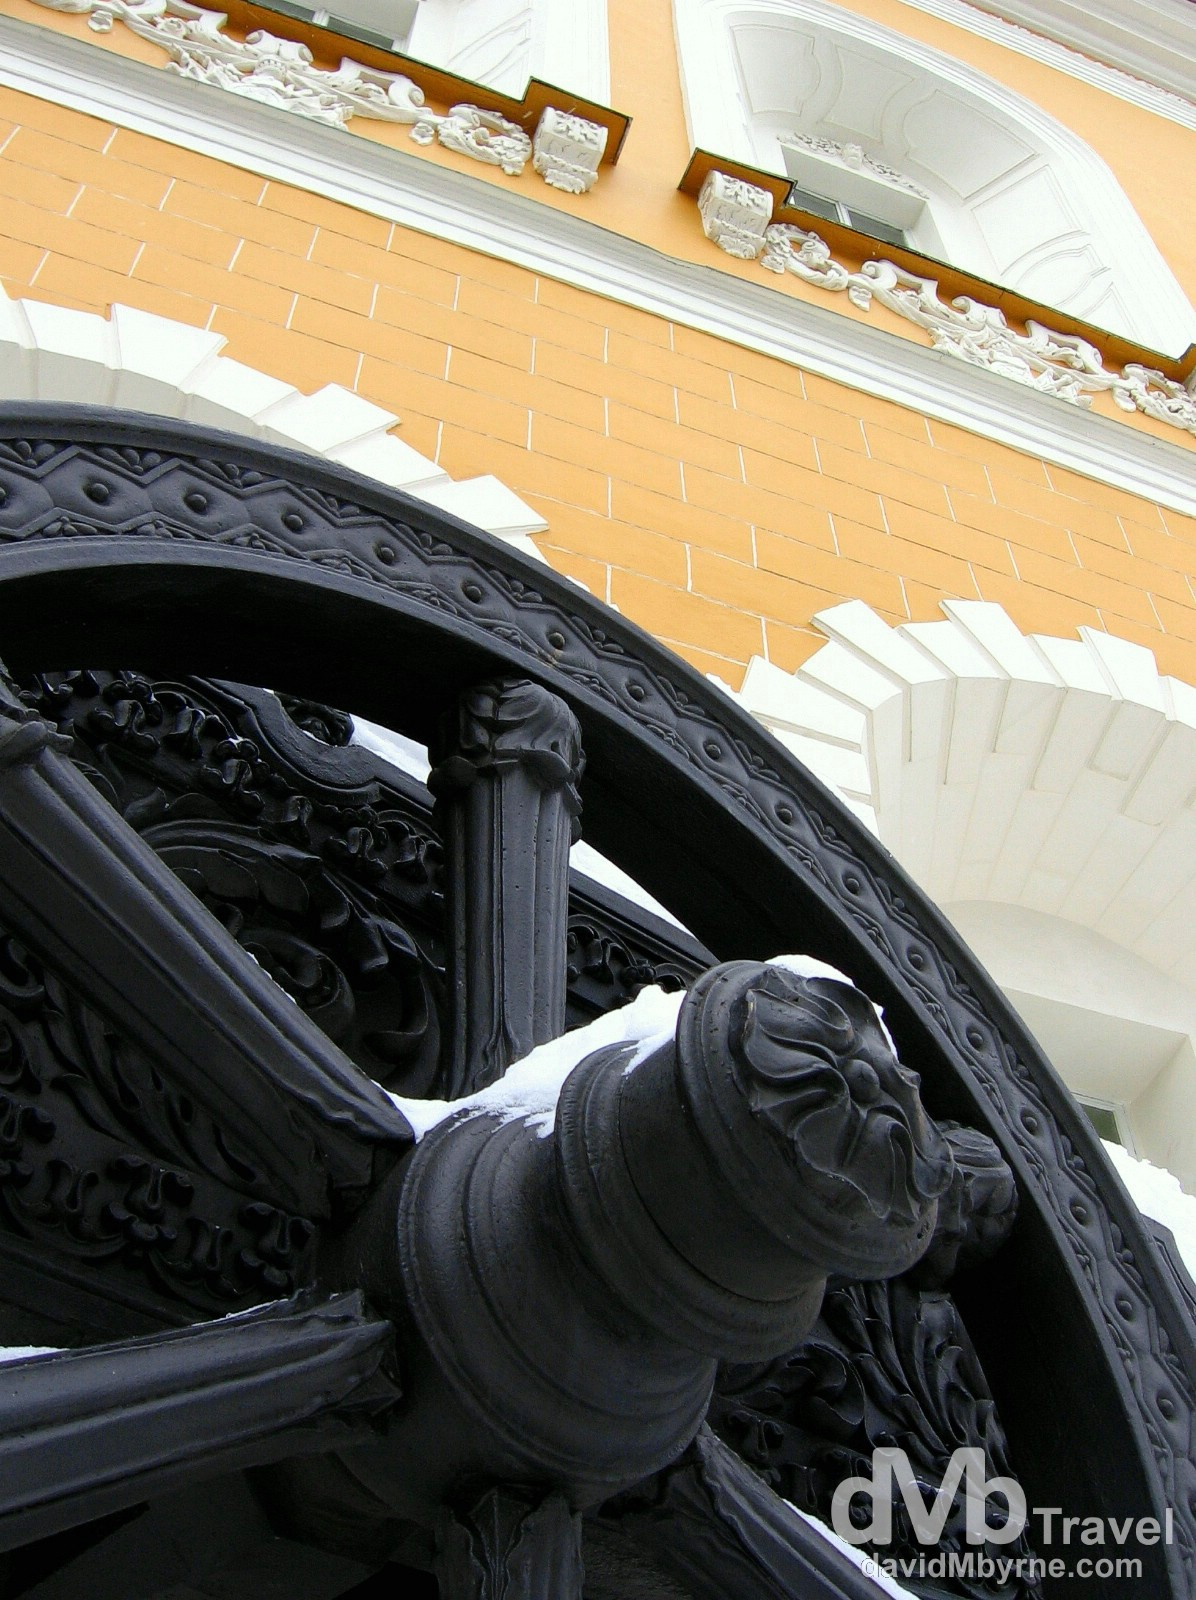 A decorative Napoleonic cannon in the grounds of the Kremlin in Moscow, Russia. February 26th, 2006.